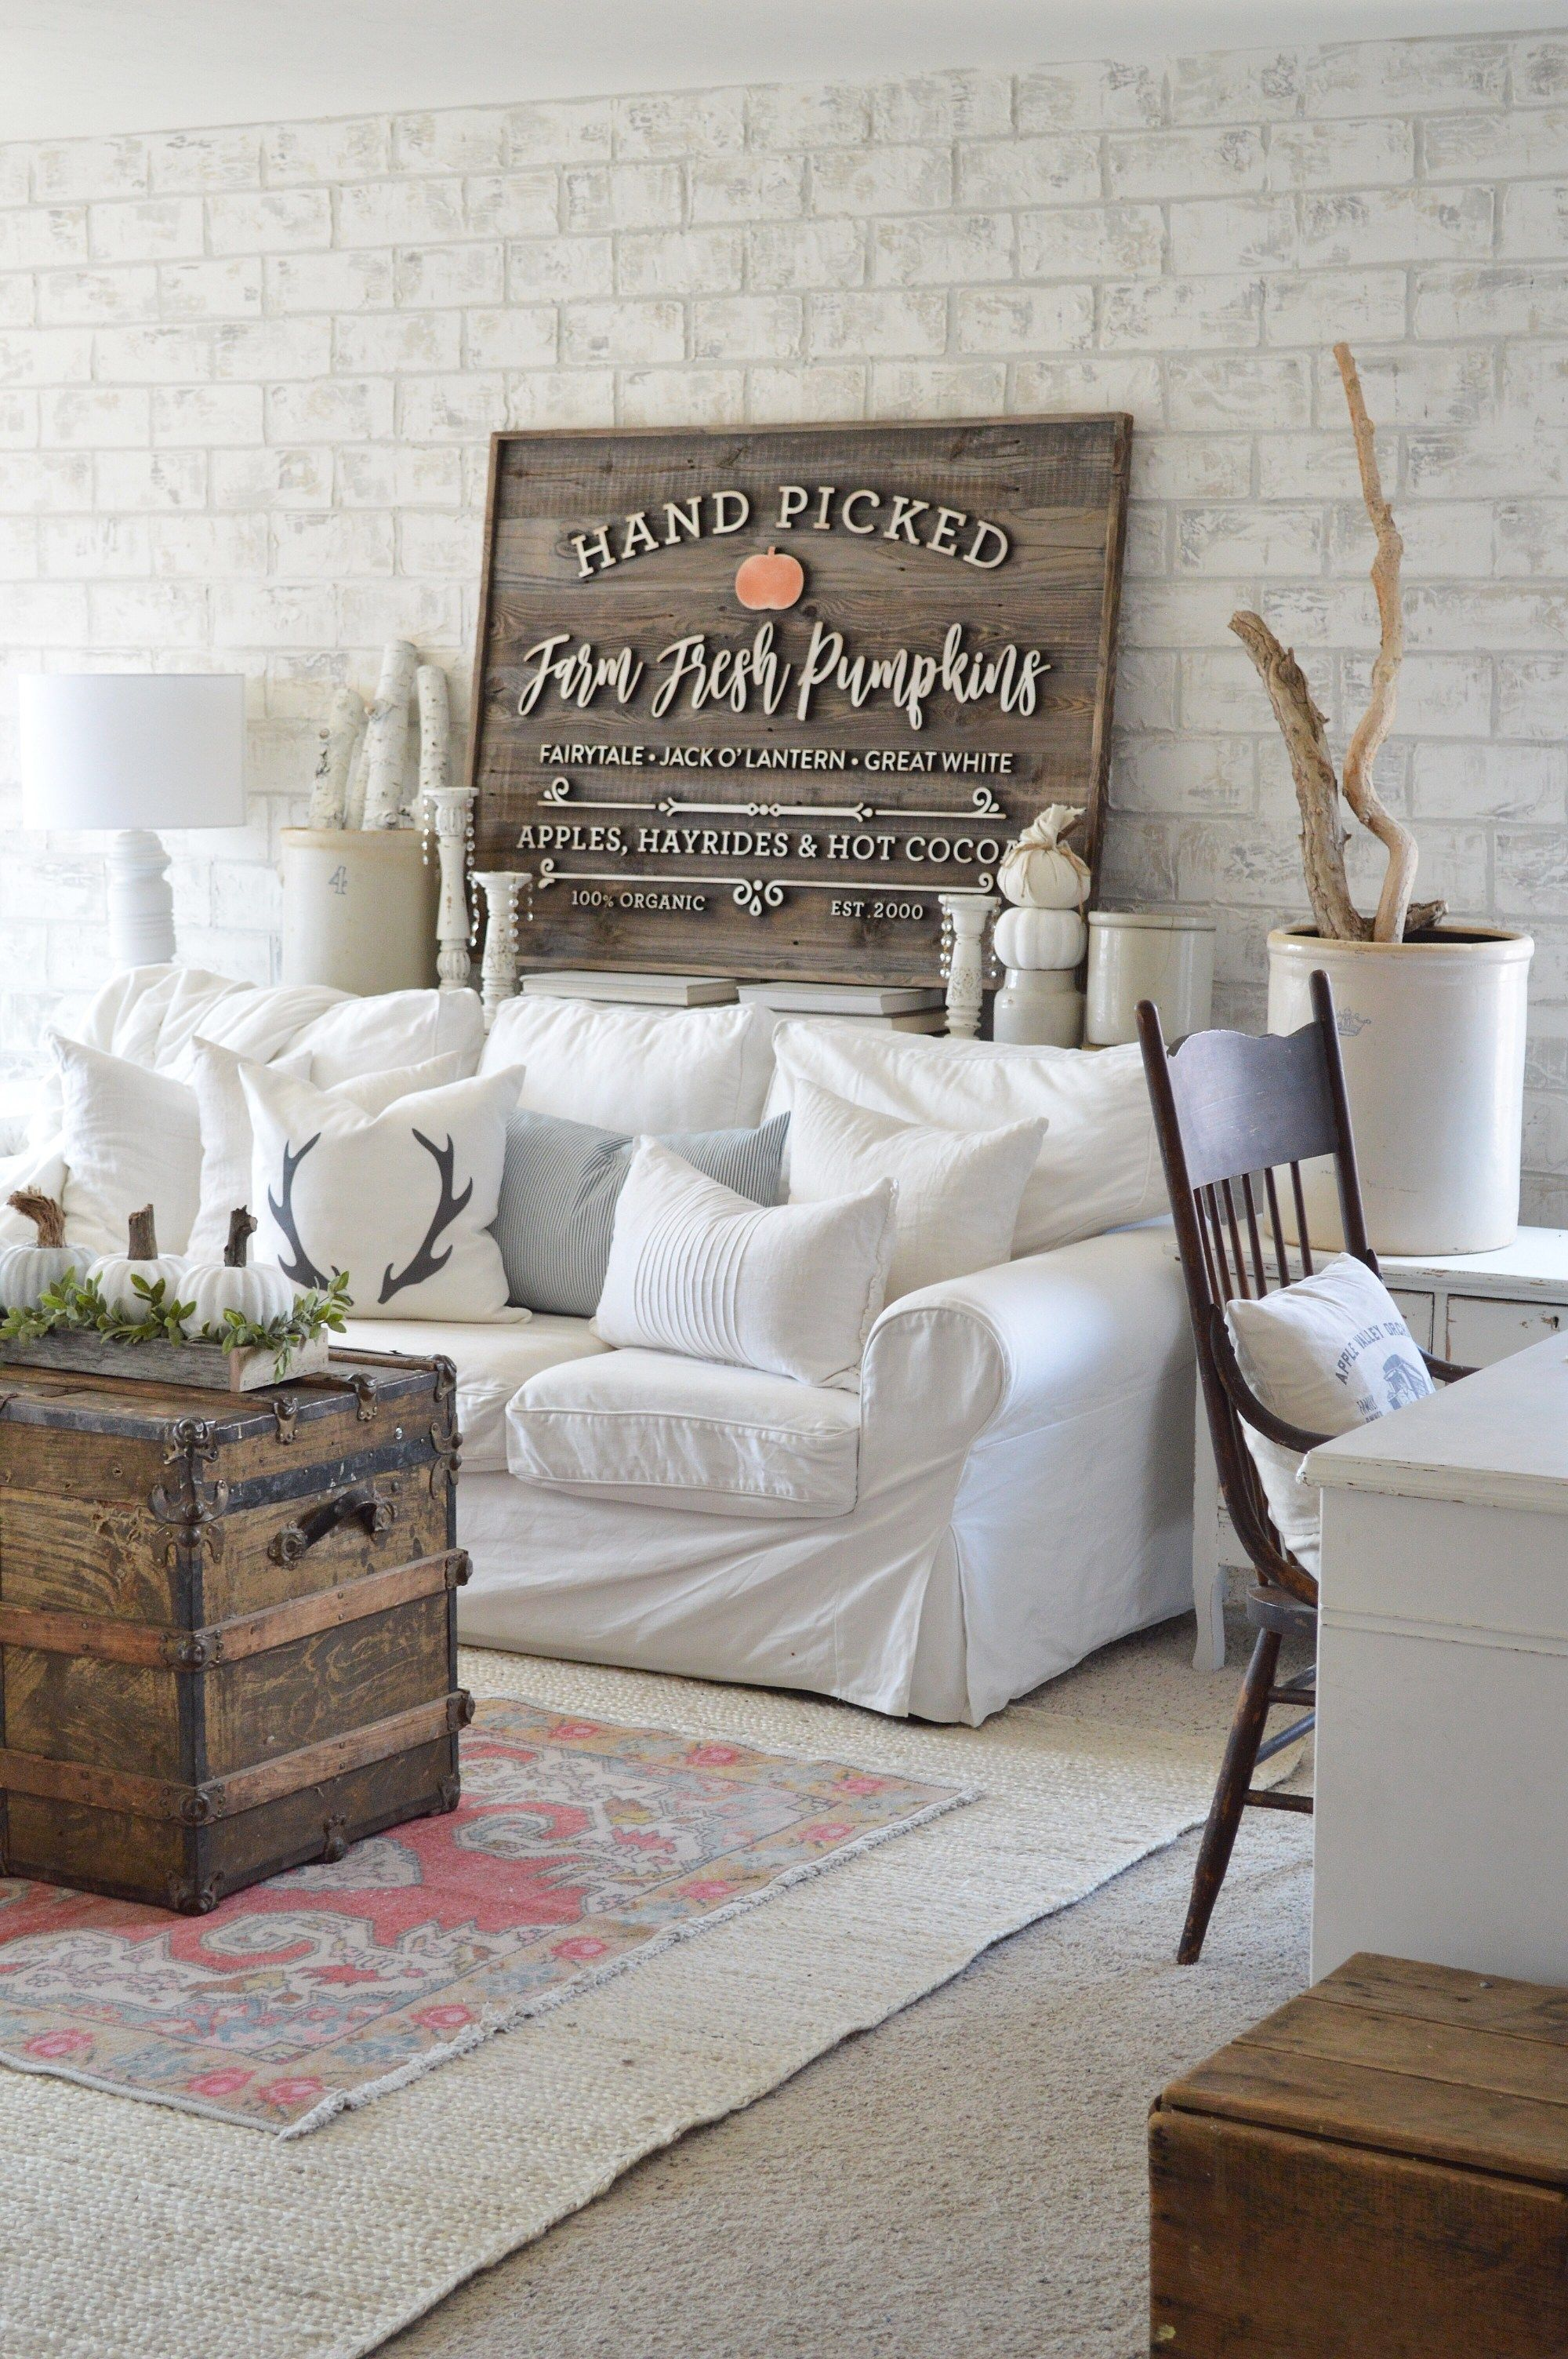 Adding vintage touches to home decor decorating ideas pinterest